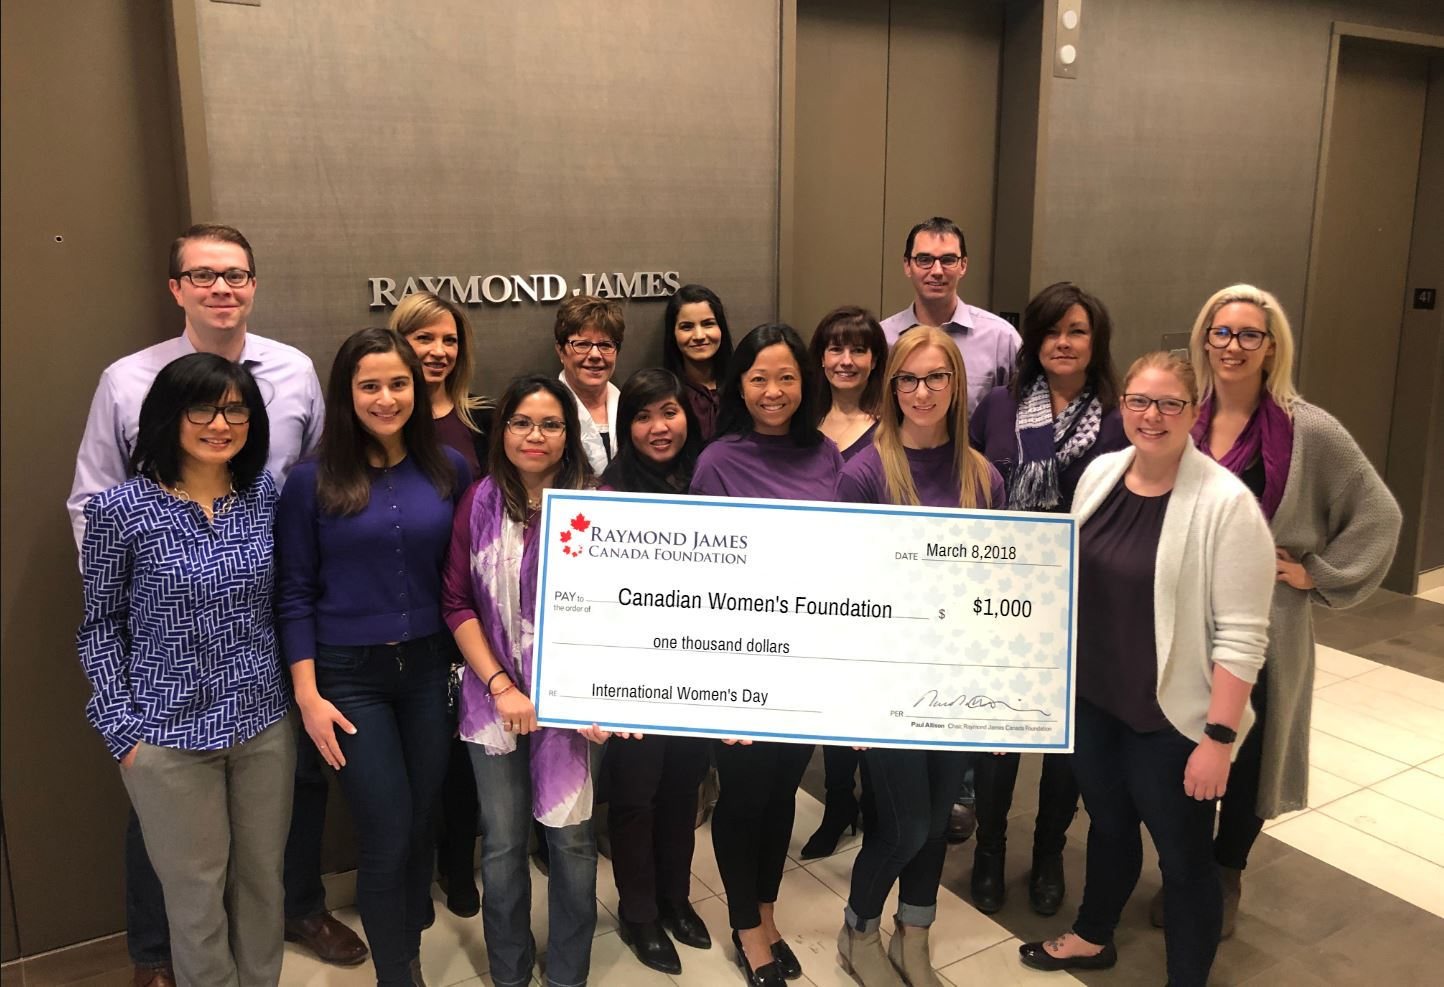 Raymond James Canadian Women's Foundation